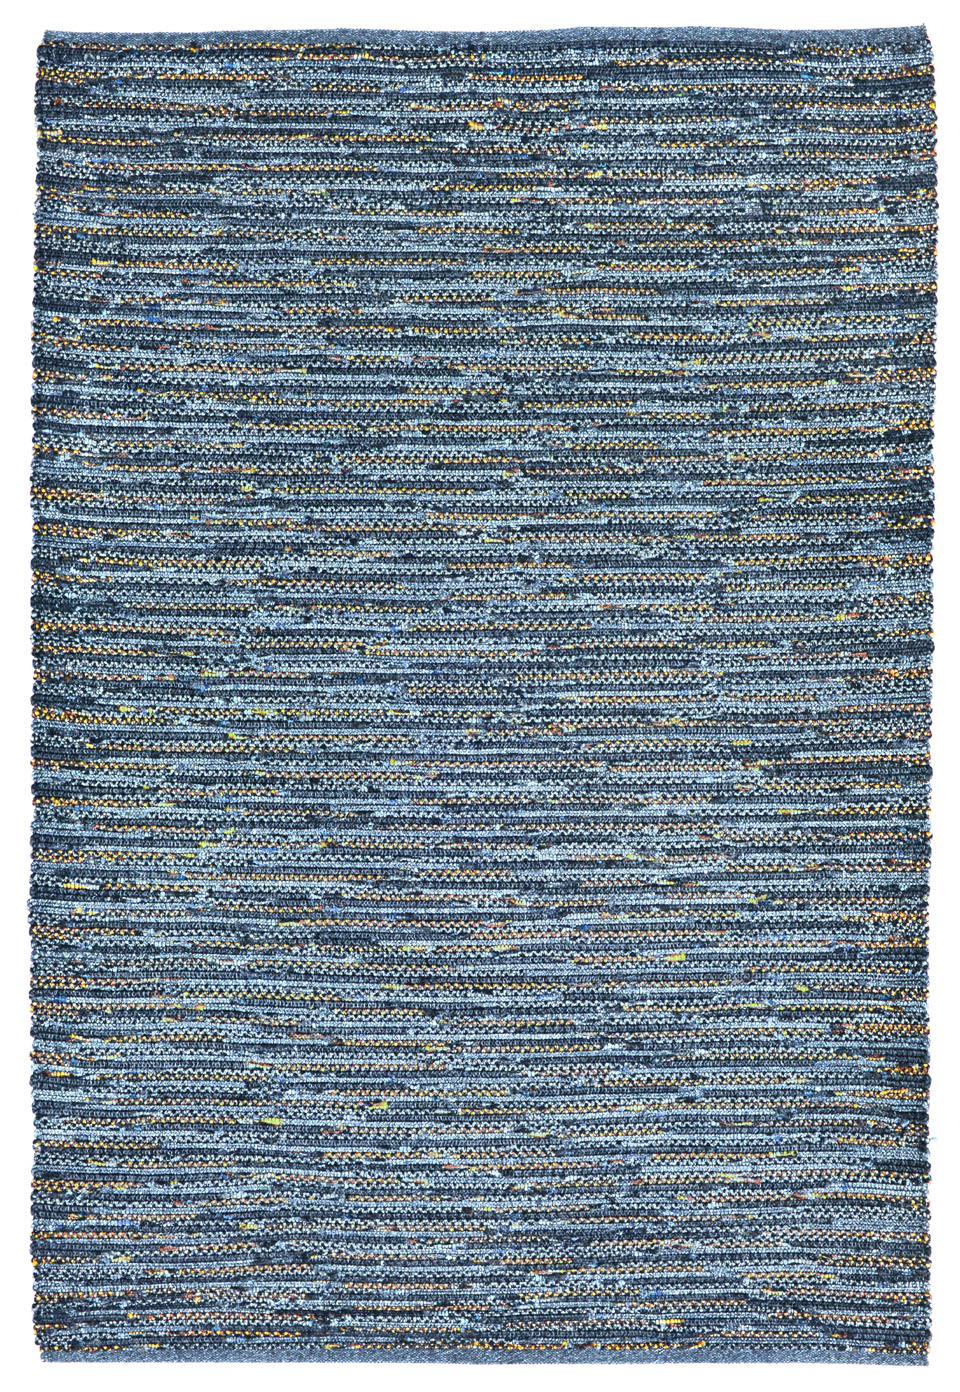 Transocean Sahara 6175/03 Plains Blue Rug